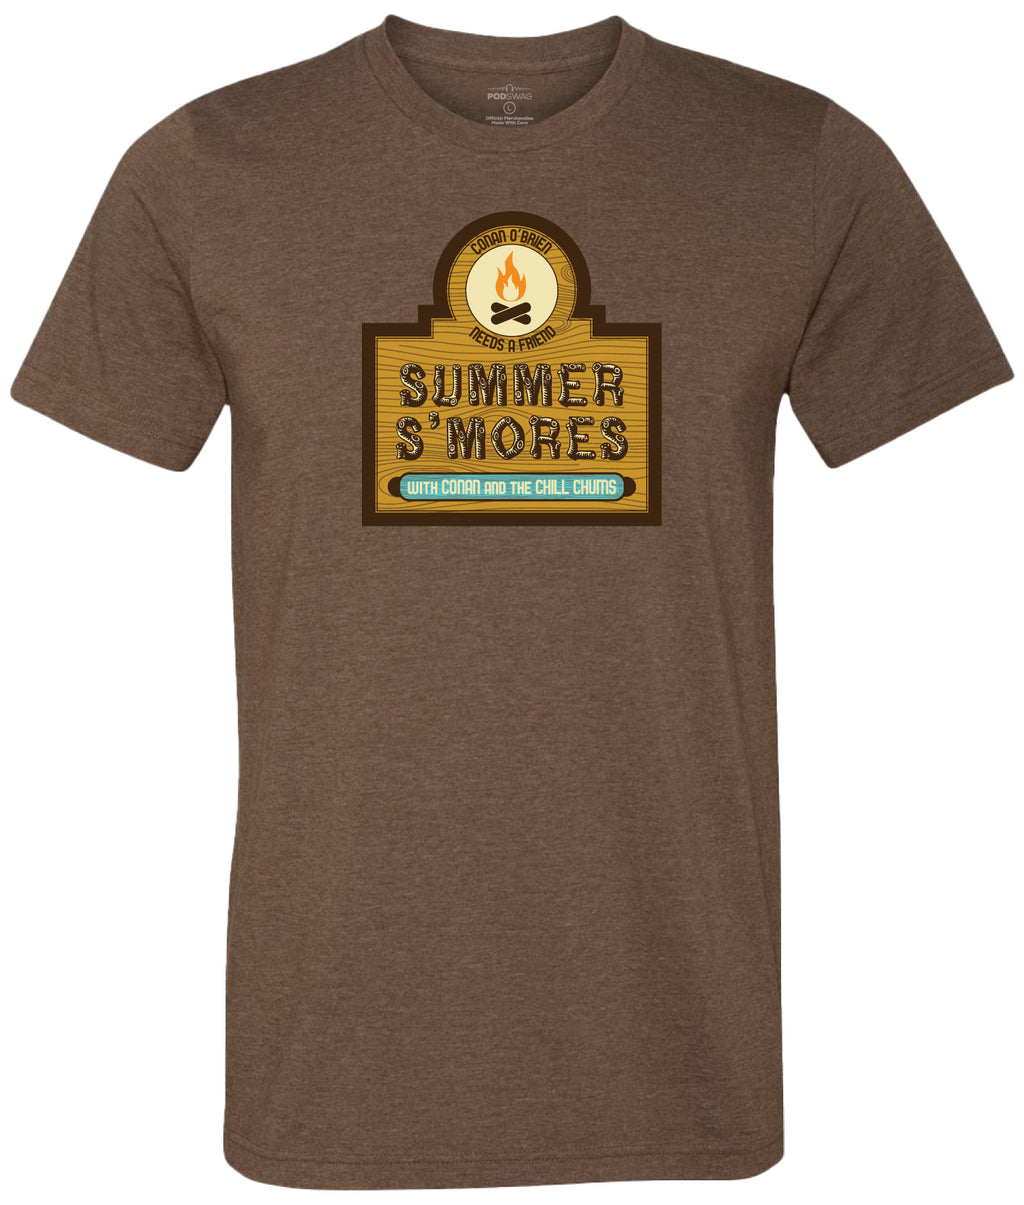 Conan O'Brien Needs A Friend: Summer S'mores T-shirt